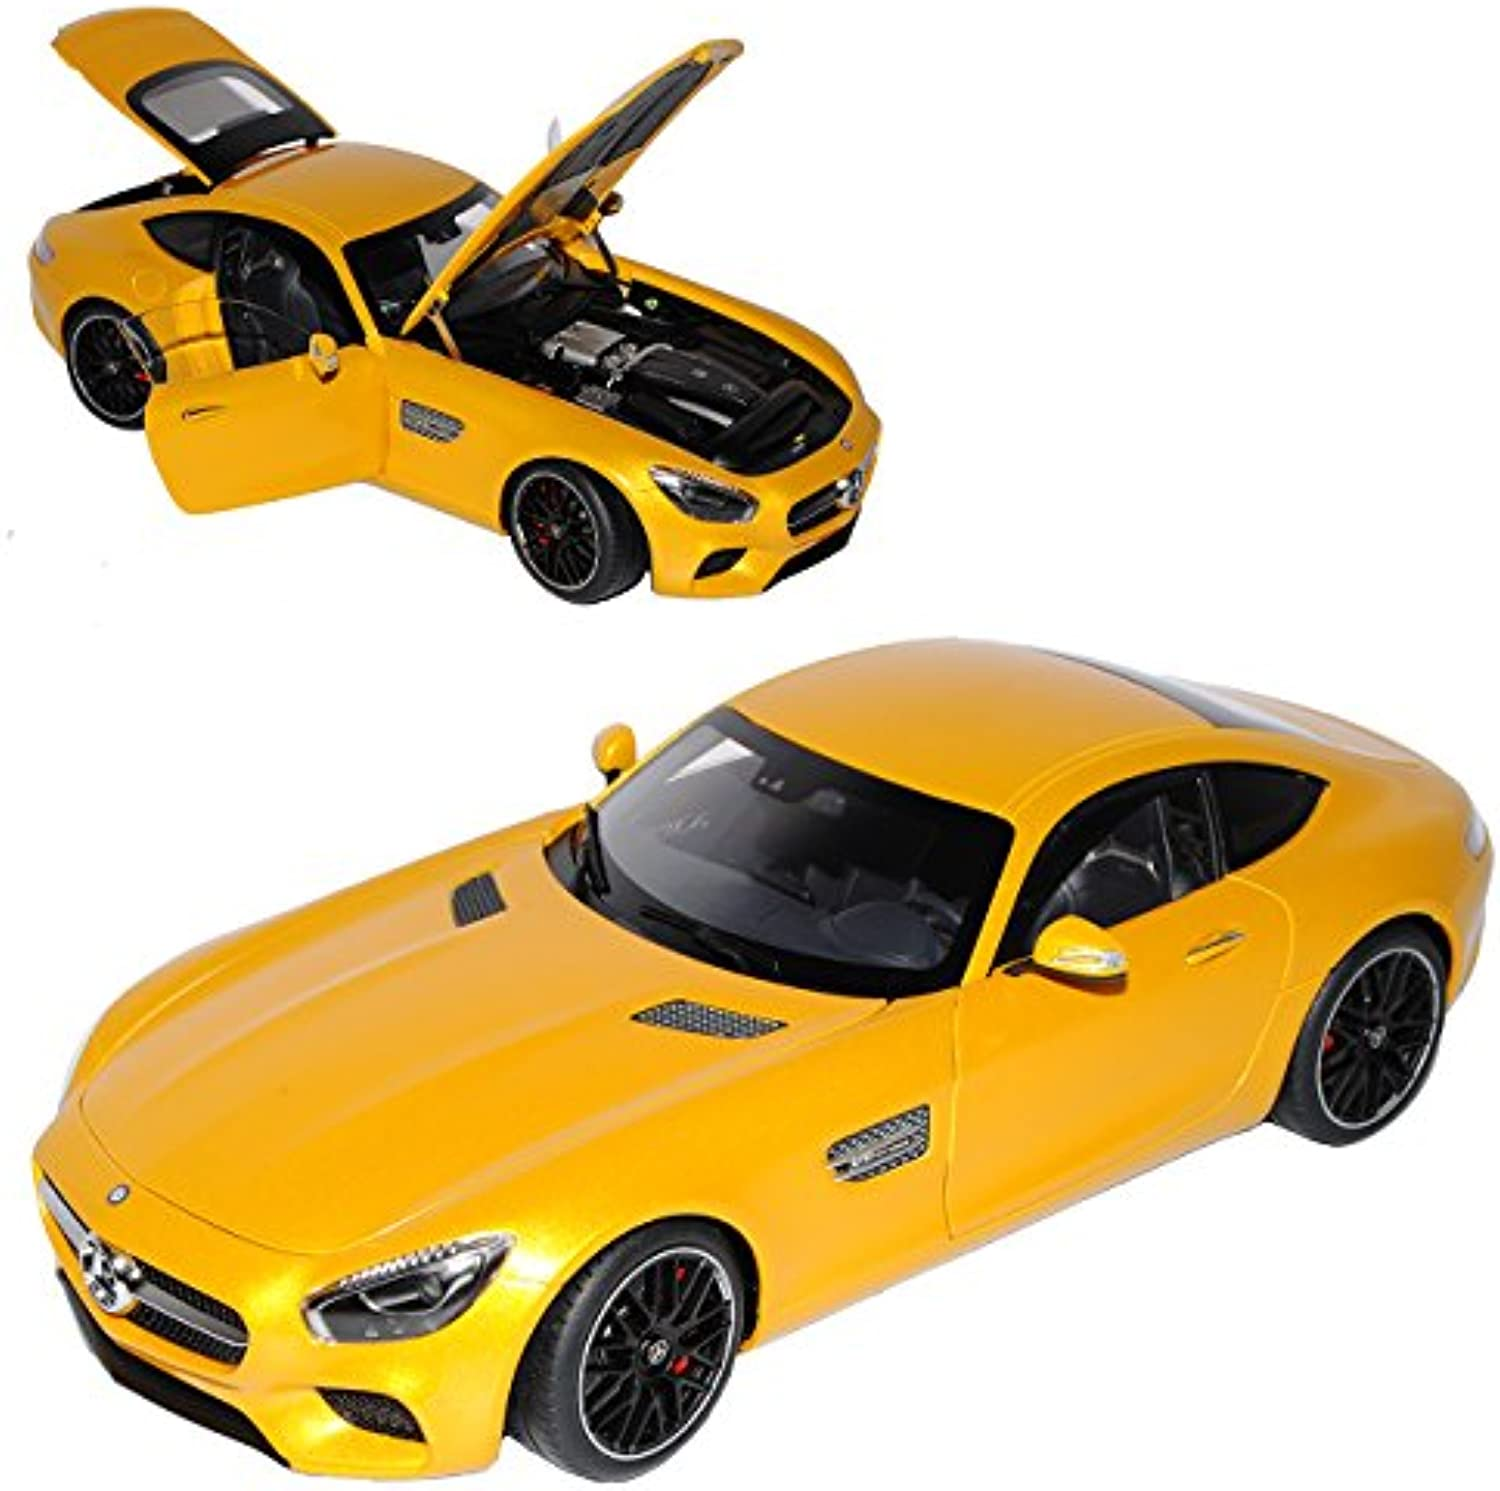 AUTOart Mercedes-Benz AMG GT S Solarbeam Gelb 2015 76314 1 18 Modell Auto